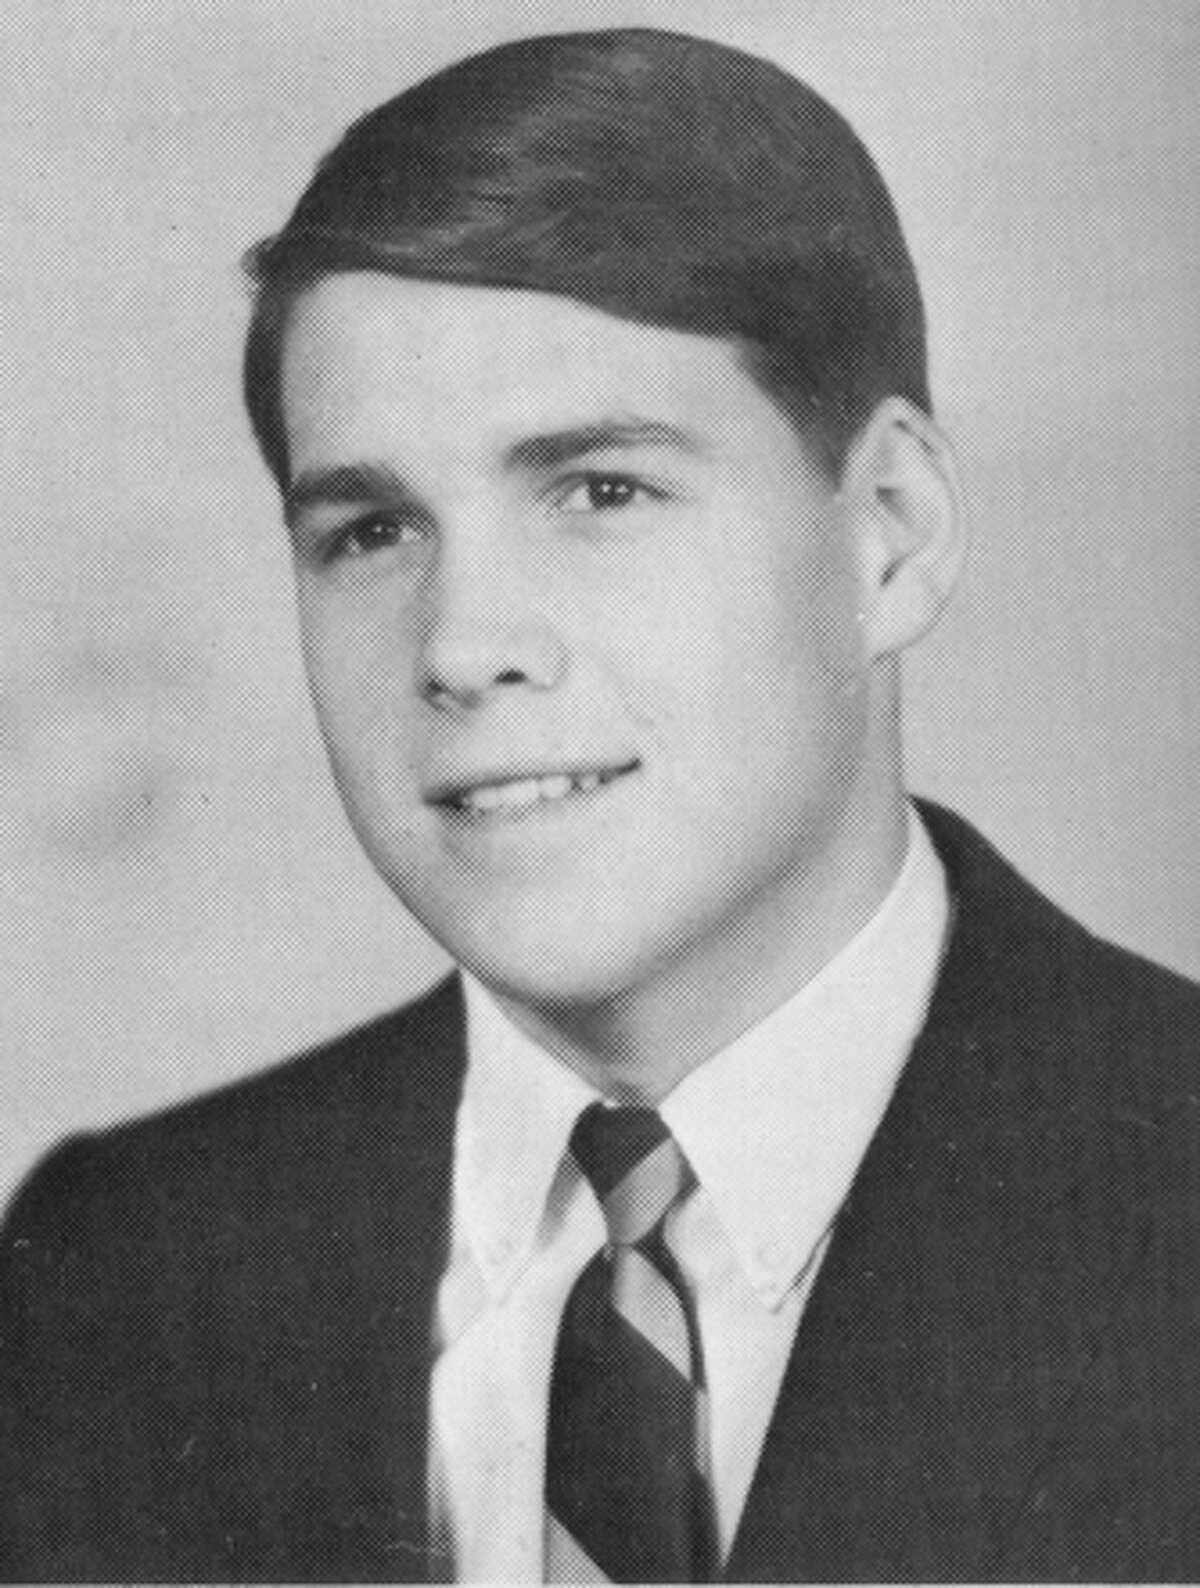 Rick Perry's senior class photo from his 1968 high school yearbook.